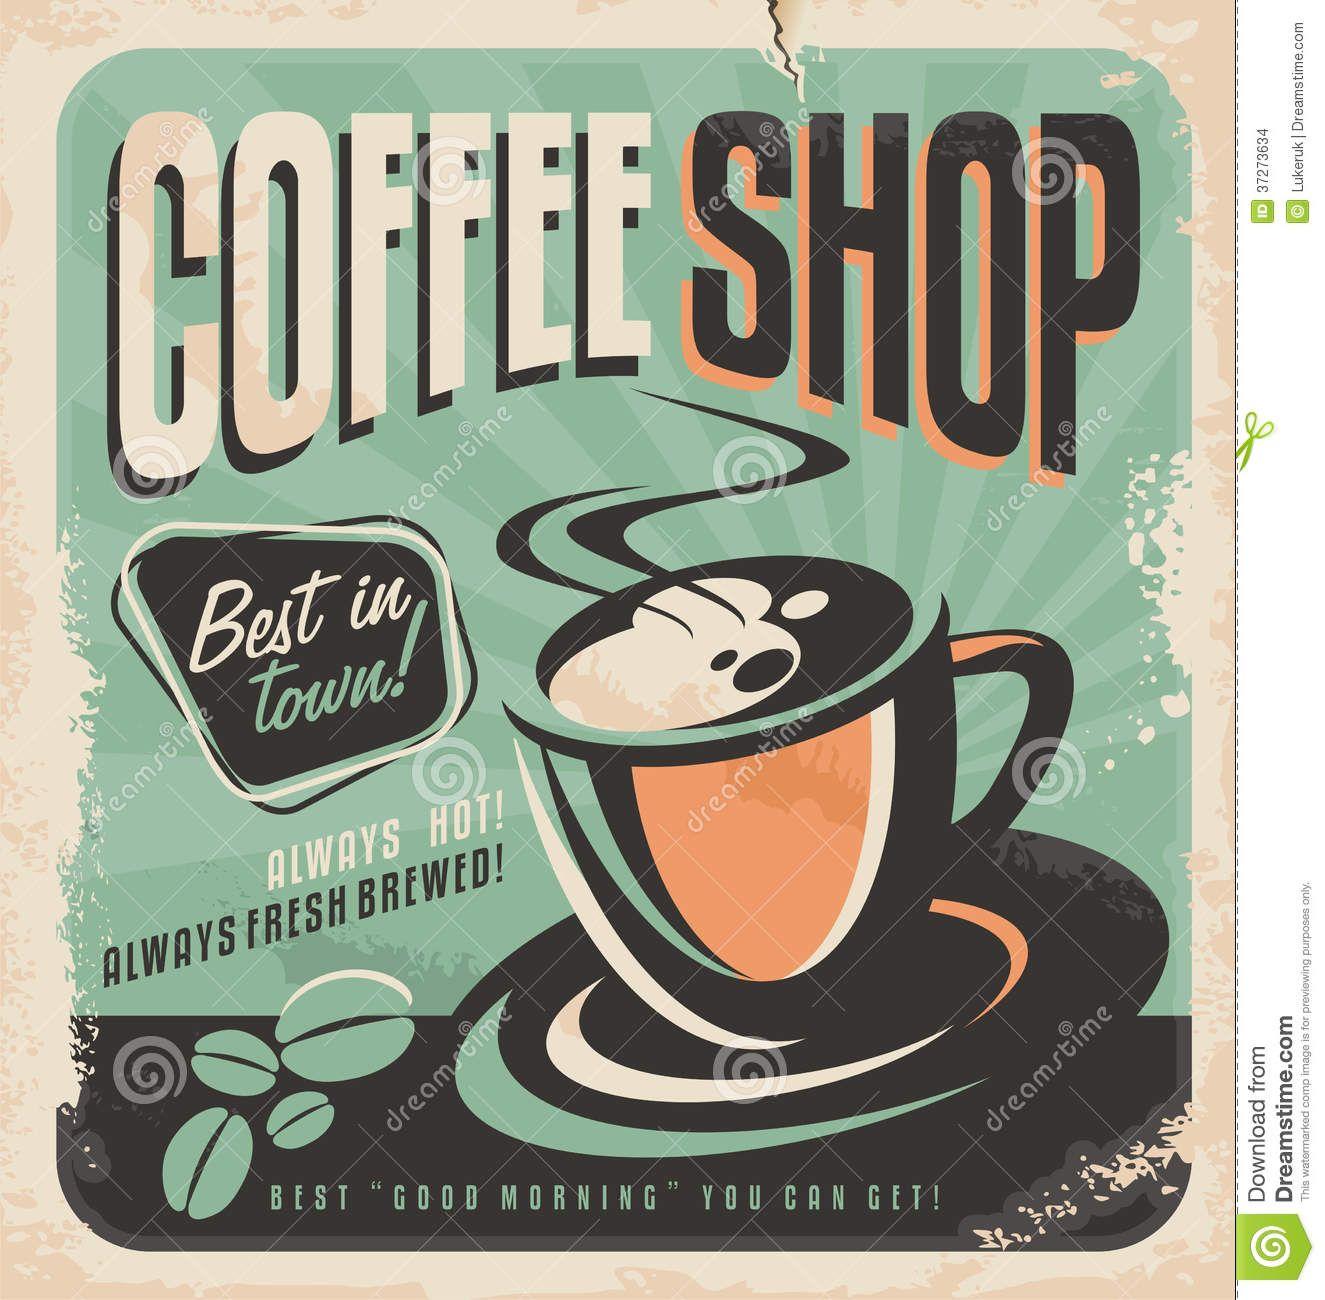 Retro Poster For Coffee Shop Stock Images - Image: 37273634